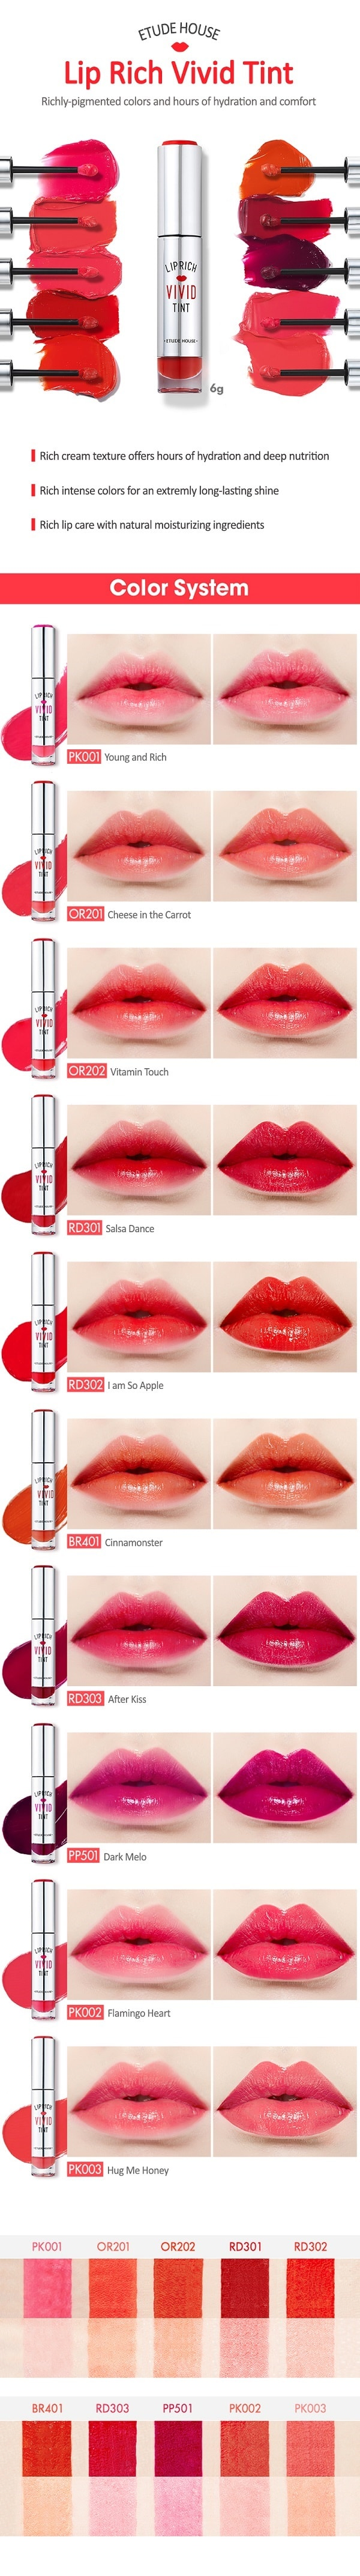 ETUDE HOUSE Lip Rich Vivid Tint 9 Colors